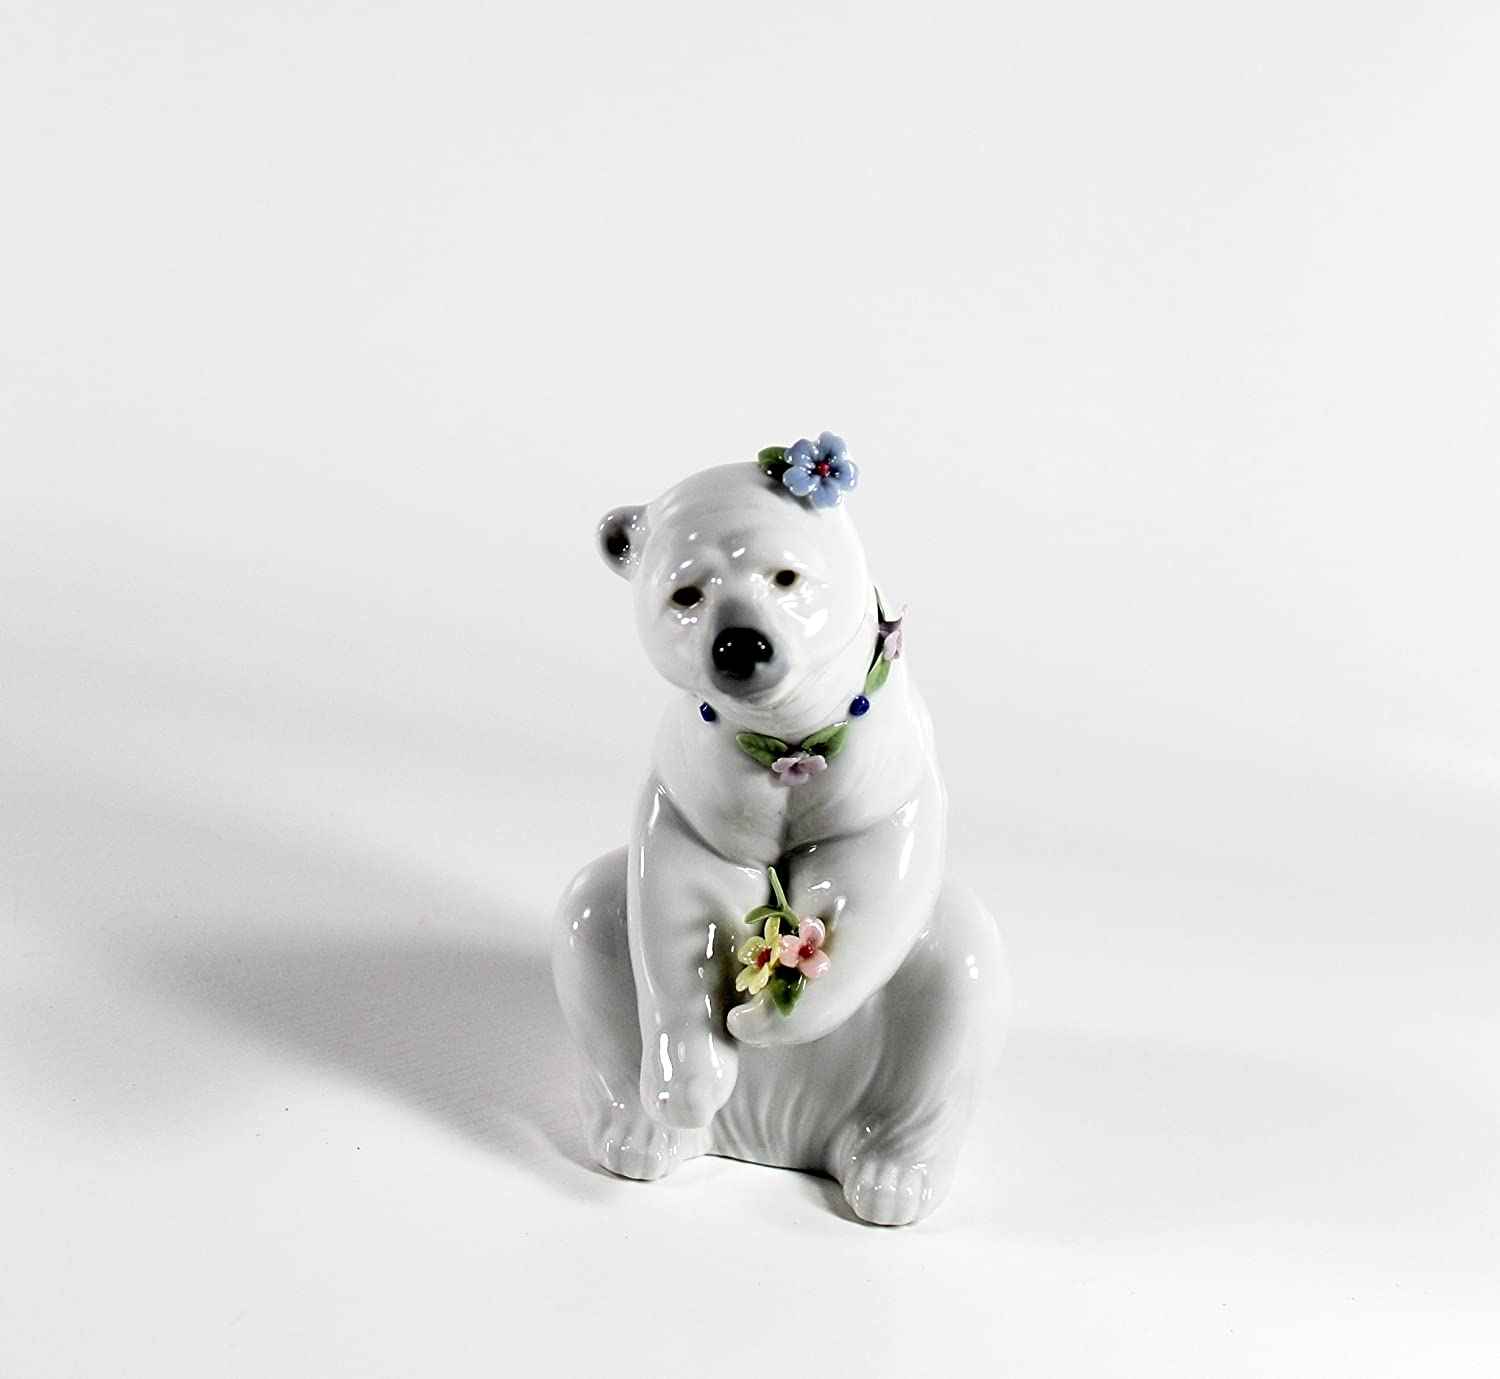 Lladro Polar Bear Resting With Flowers Collectible Figurine 06355 Retired Glazed Finish Home Kitchen